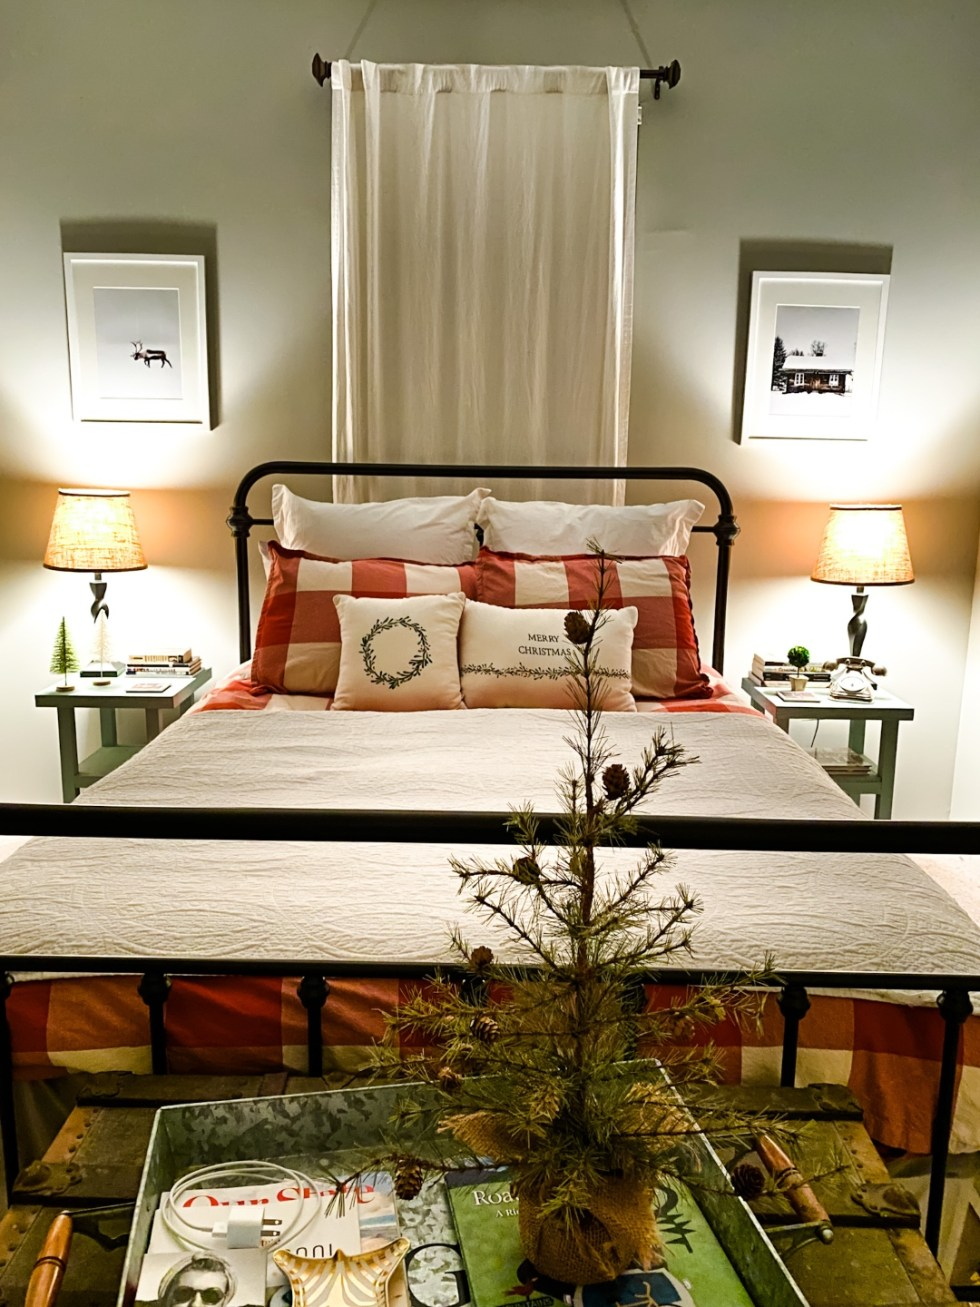 Home Decor: 7 Winter Art Prints for your Gallery Wall - I'm Fixin' To - @imfixintoblog |Winter Art Prints by popular NC life and style blog, I'm Fixin' To: image of two winter art prints hanging on a bedroom wall next to a bed with red and white buffalo plaid bedding.